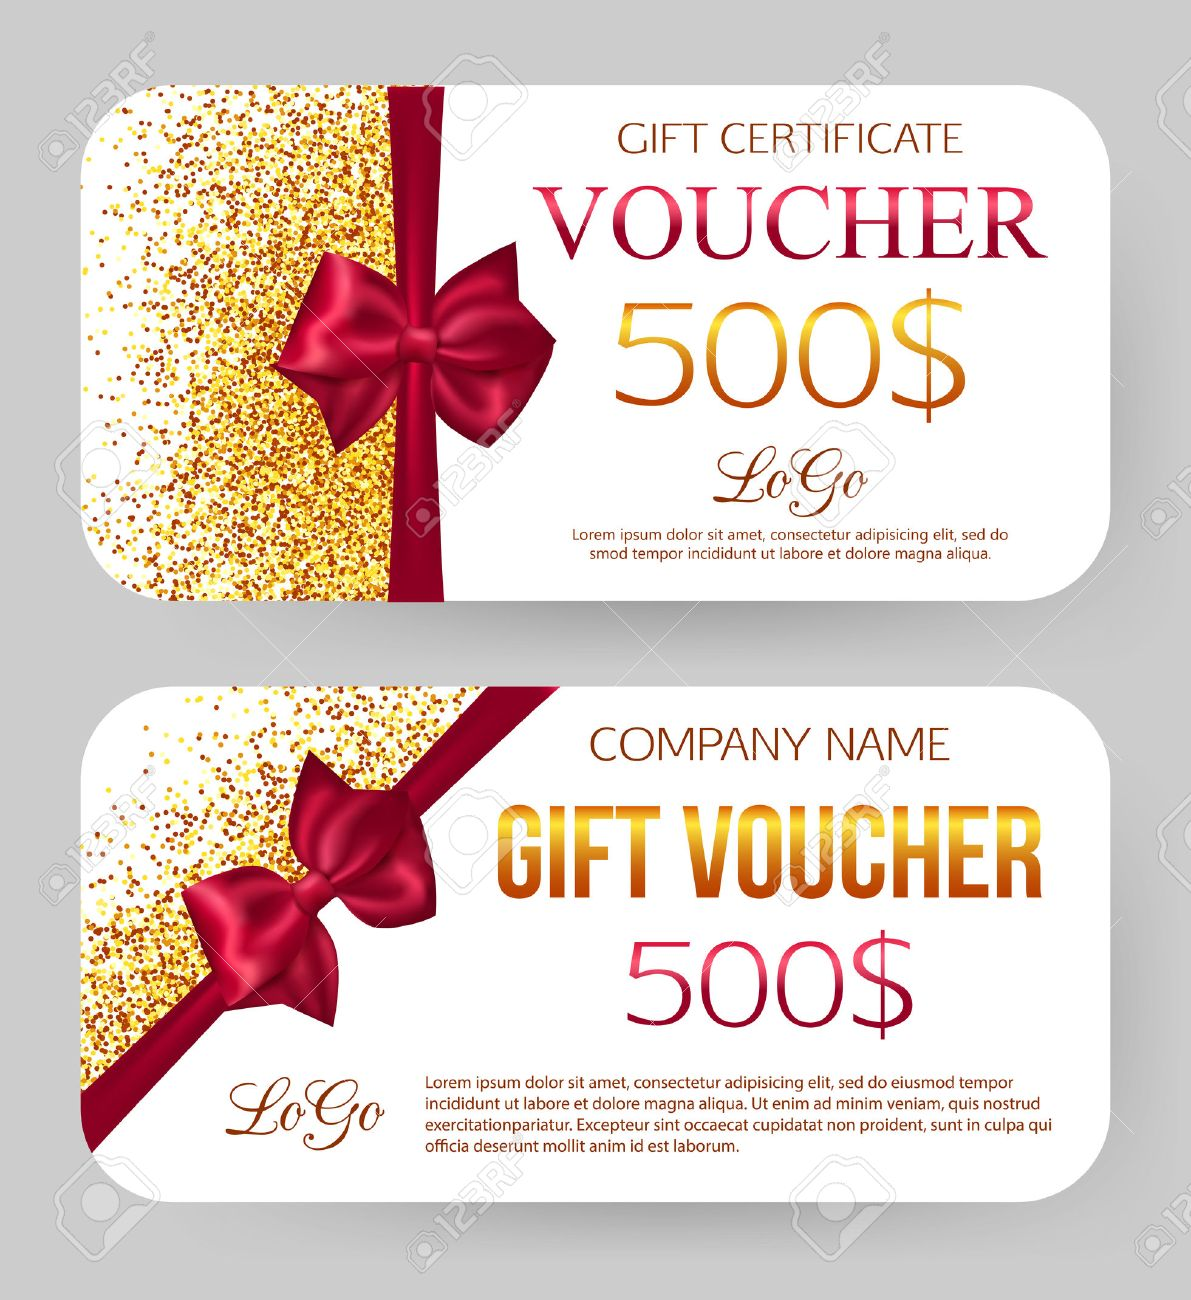 Gift voucher template golden design for gift certificate coupon gift voucher template golden design for gift certificate coupon golden dust 500 yadclub Choice Image